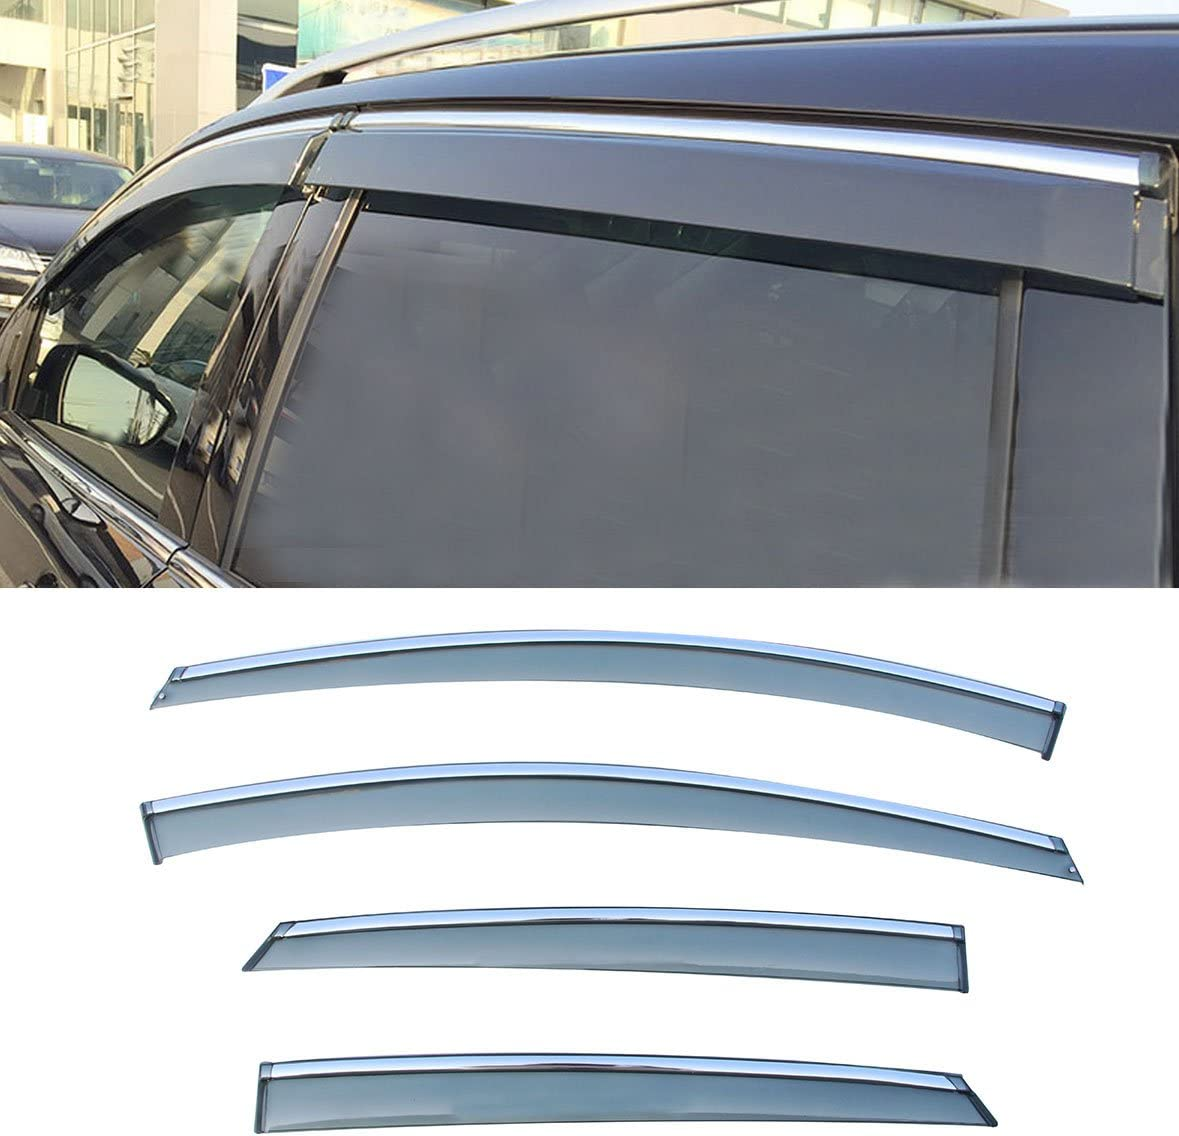 LQQDP 4pcs Smoke Tint With Chrome Trim Outside Mount Tape On//Clip On Style PVC Sun Rain Guard Vent Shade Window Visors Fit 12-18 Ford Focus